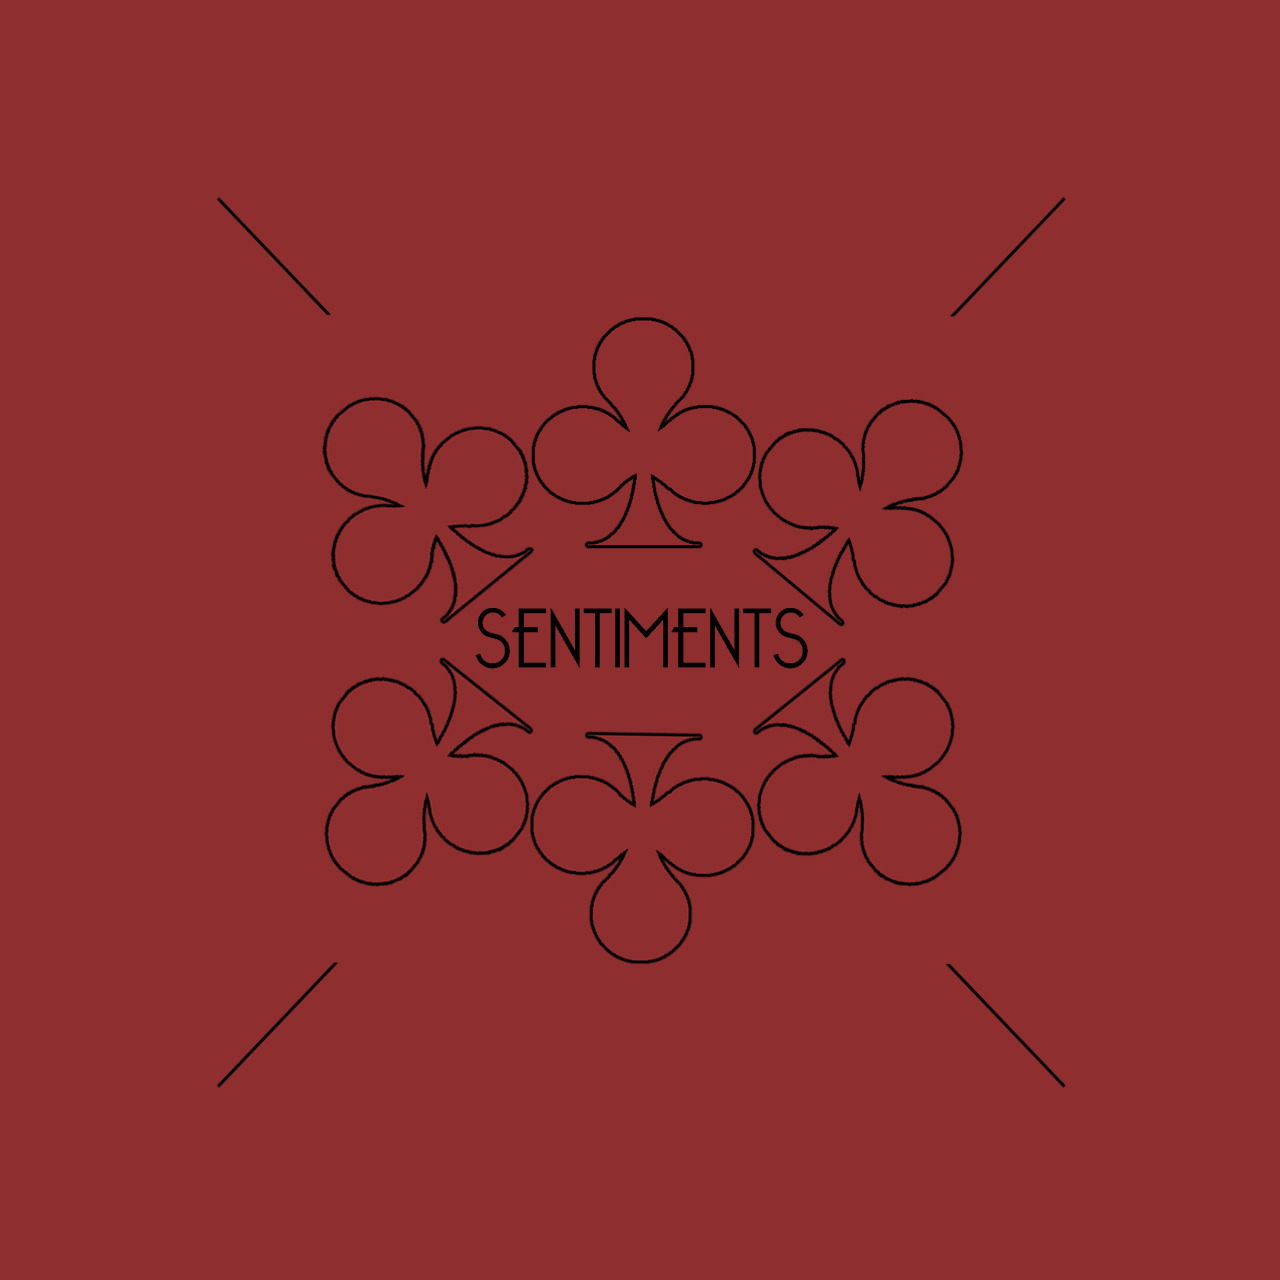 https://soundcloud.com/sentimentmusic/sentimentsentiments